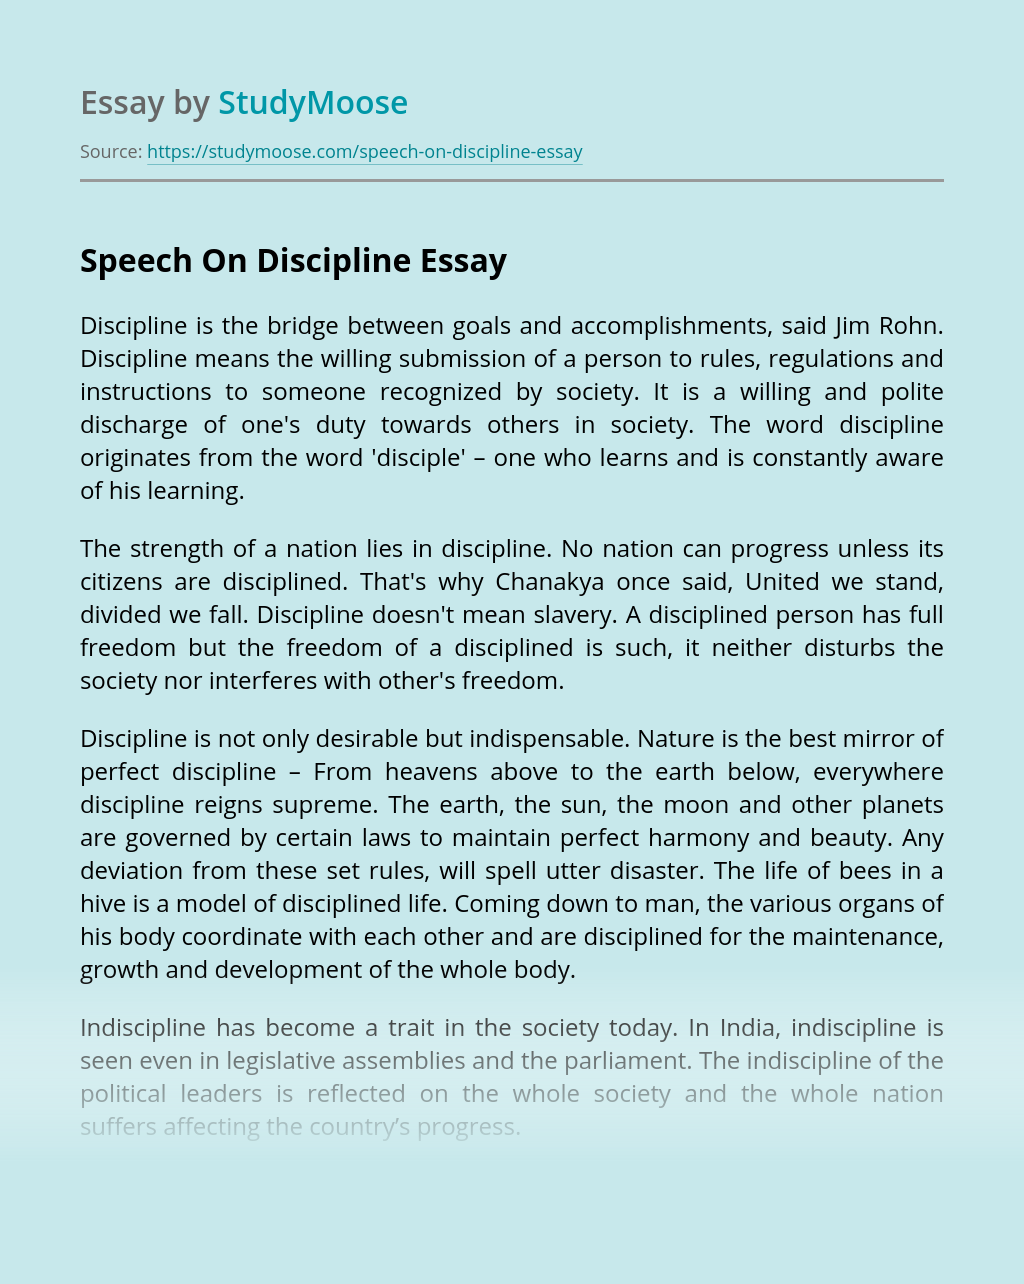 Speech On Discipline